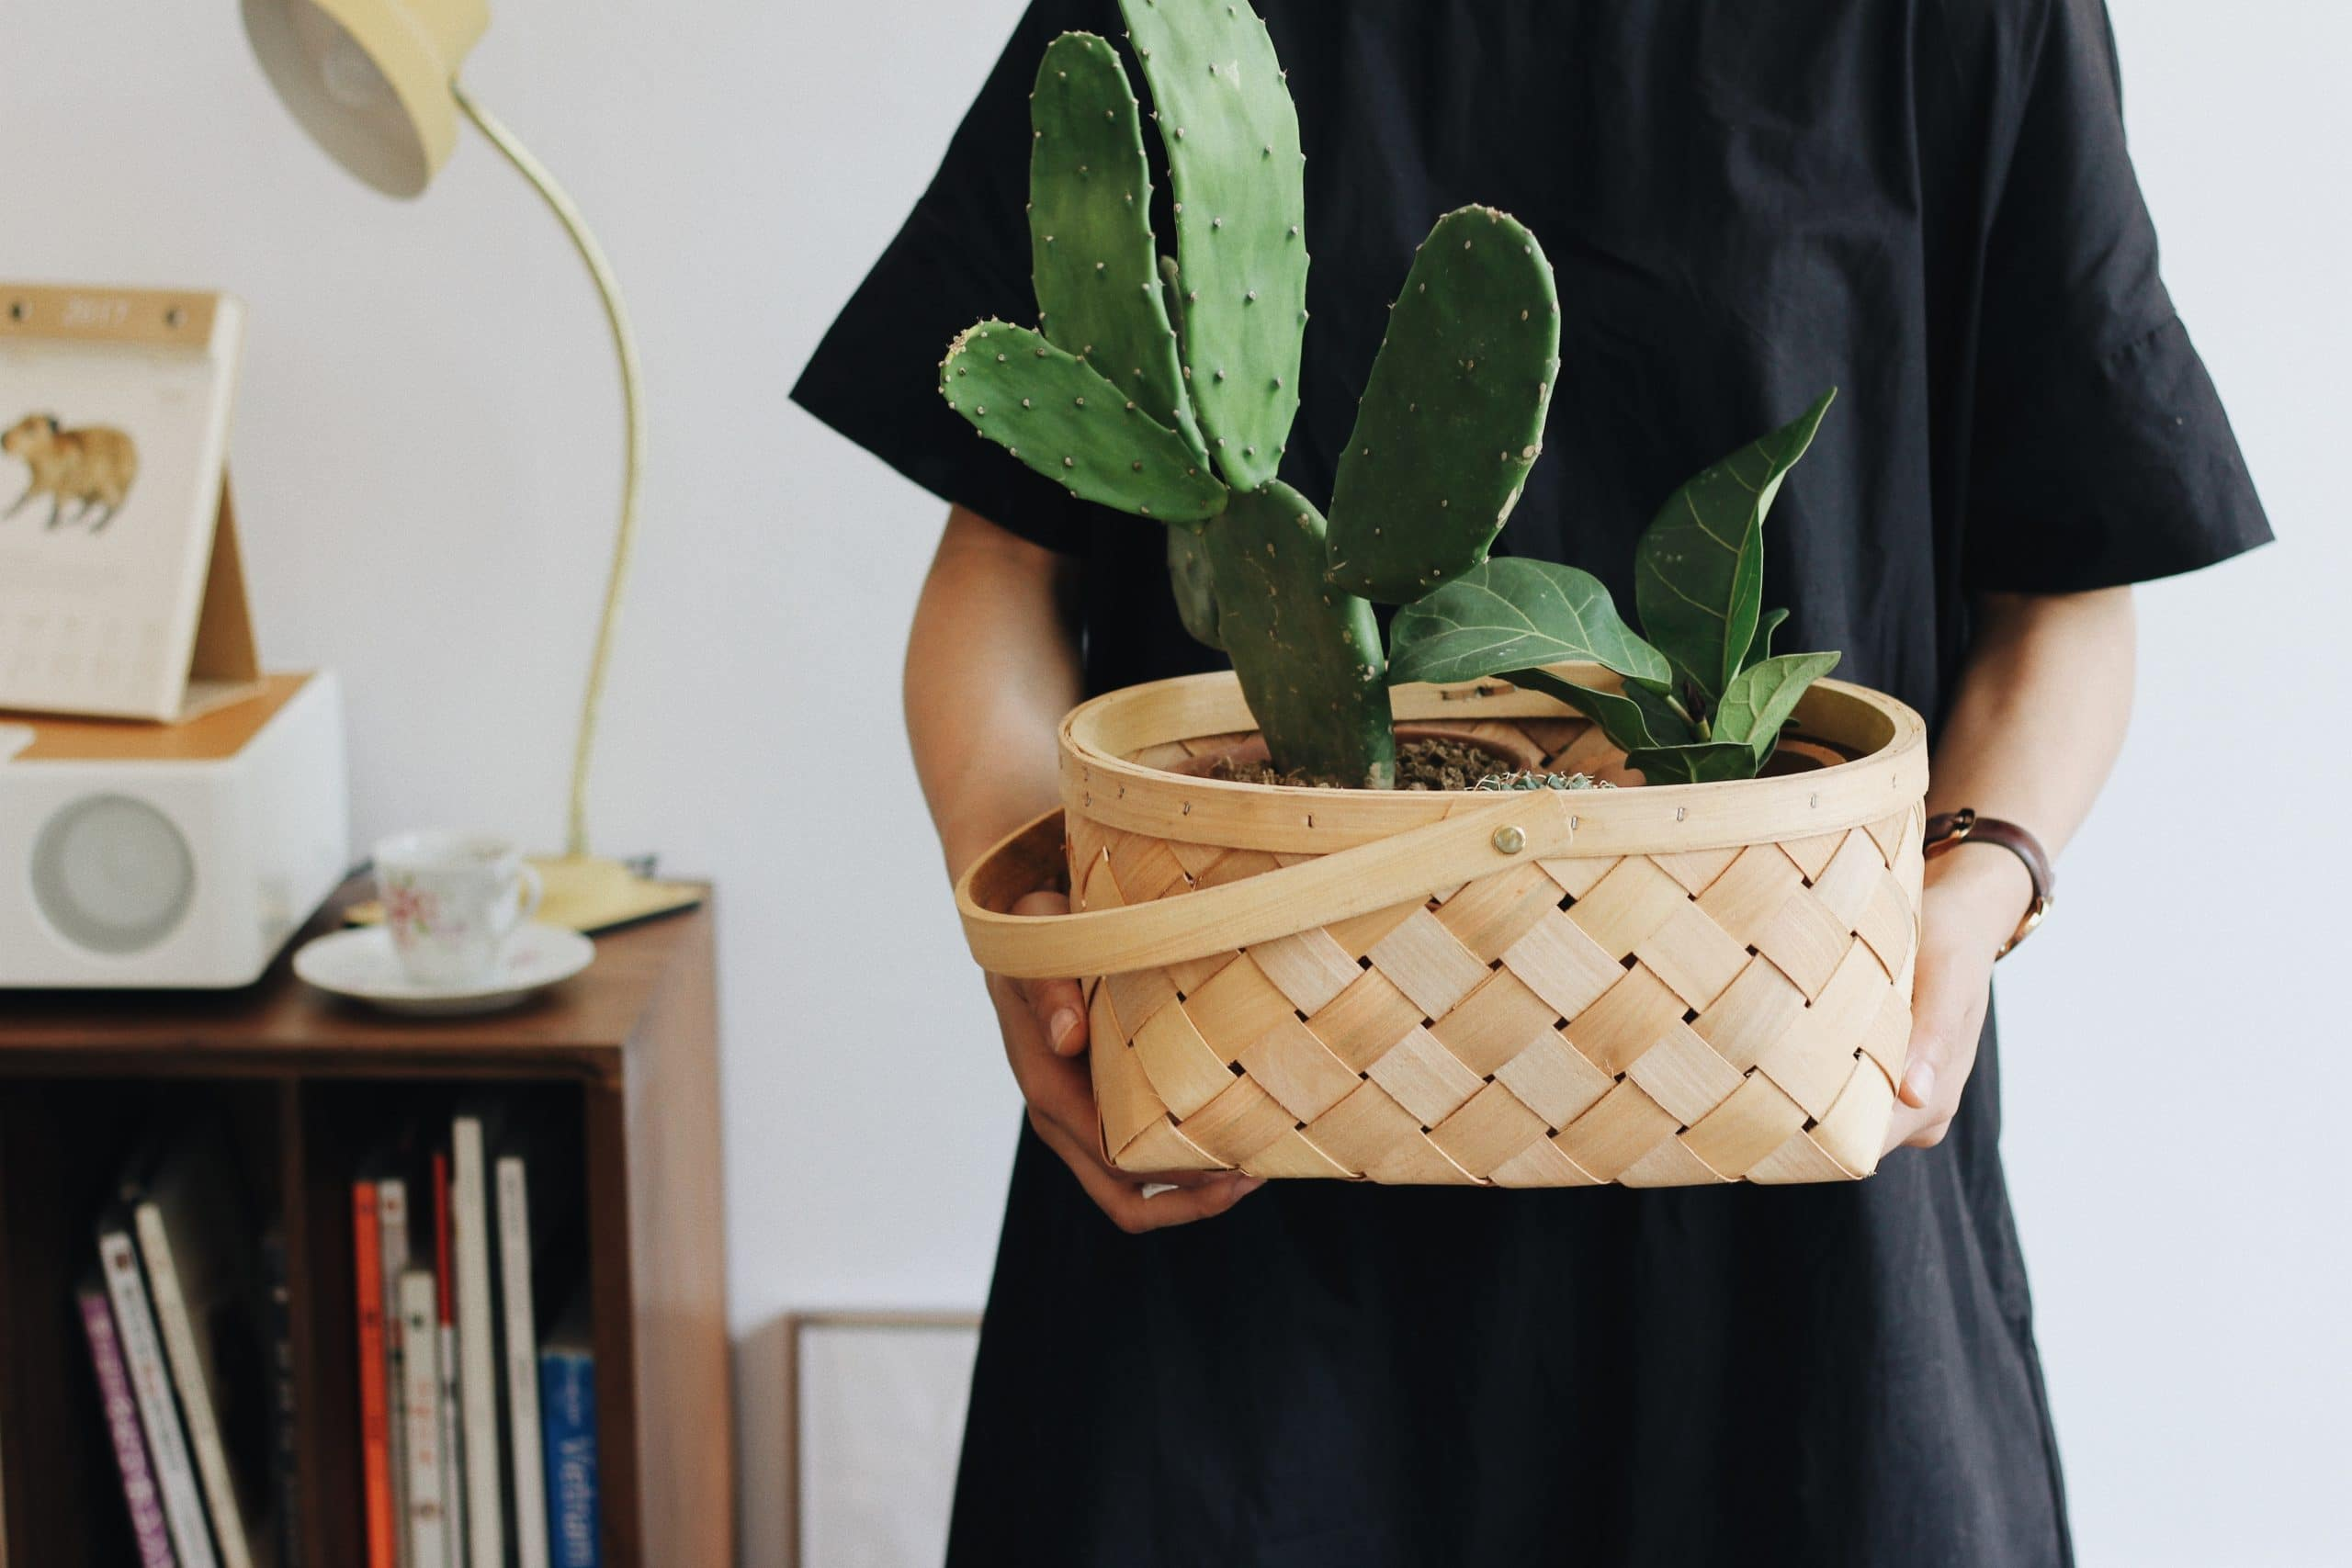 Stick to your plant care routine